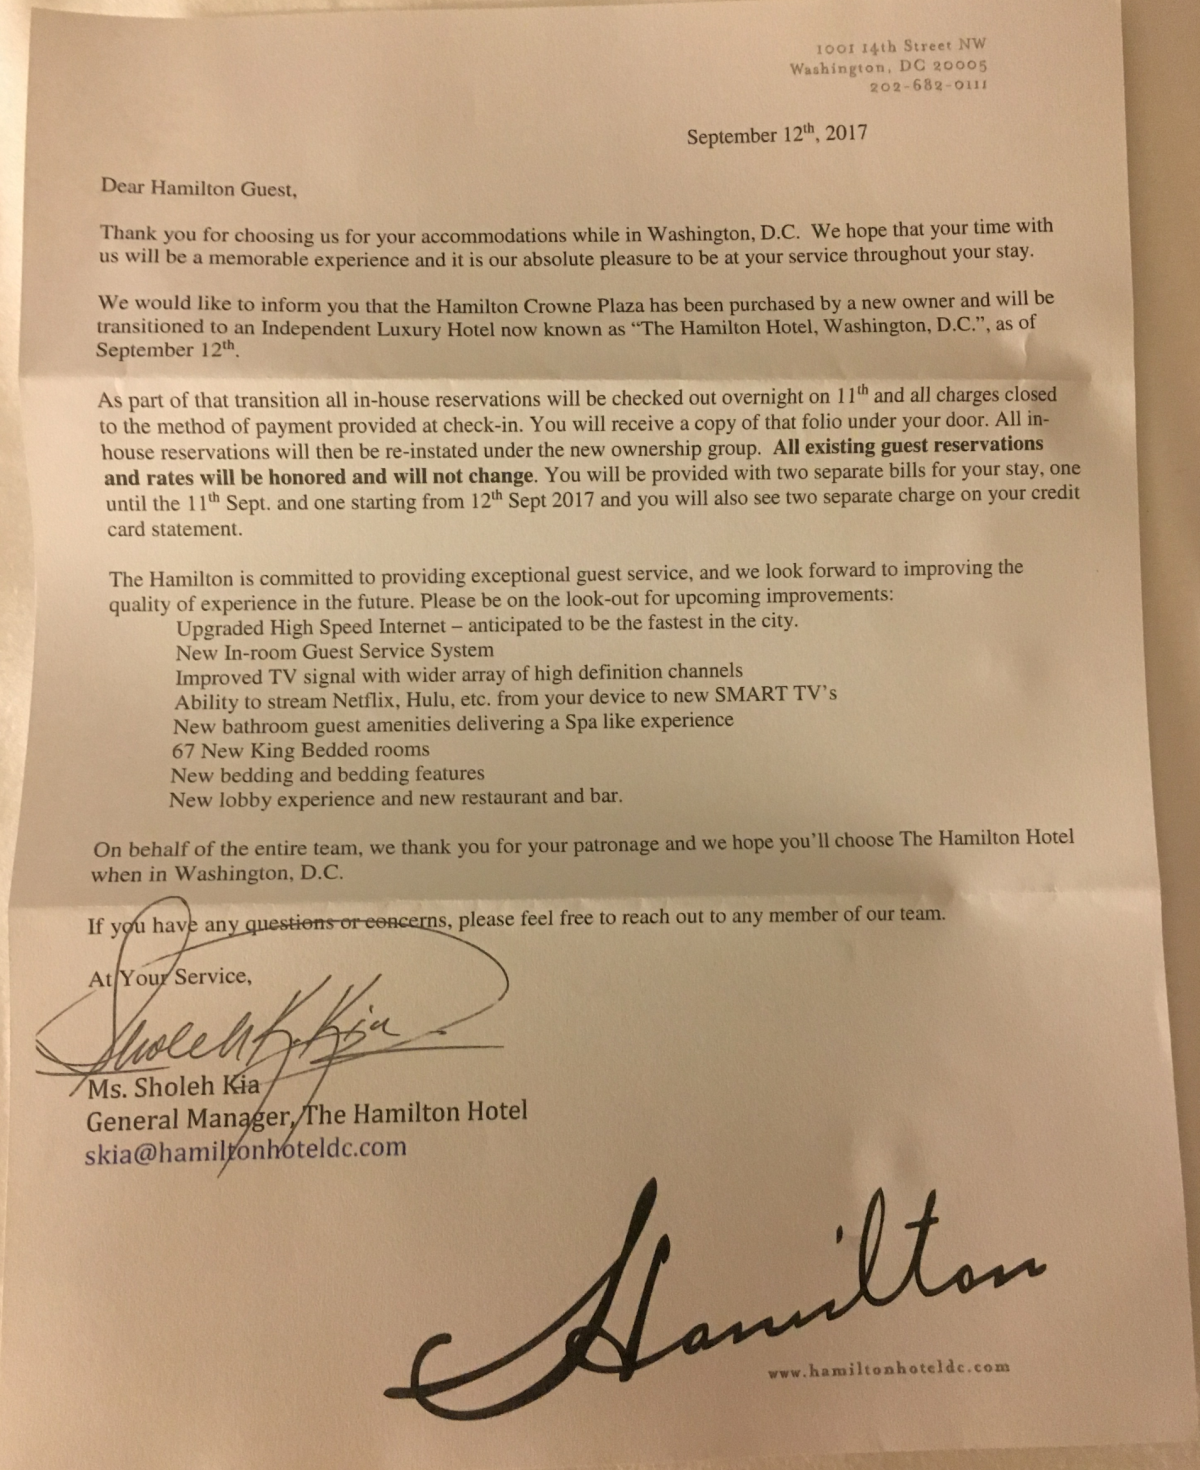 Marriot Hotel Send You A Letter About Stay